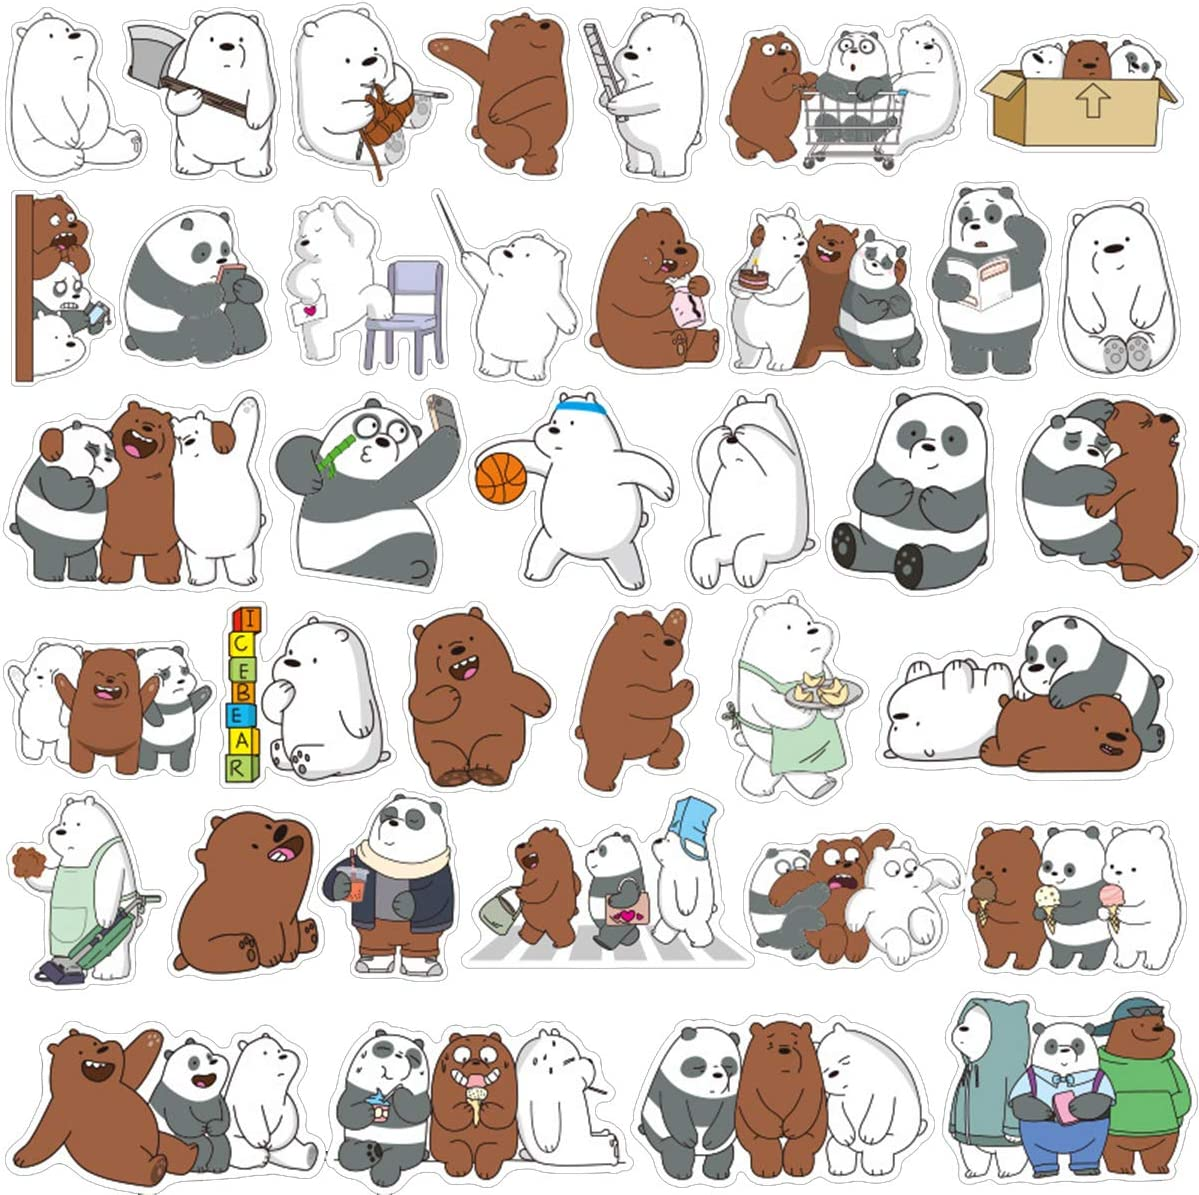 We Bare Bears Laptop Stickers Waterproof Skateboard Pad MacBook Car Snowboard Bicycle Luggage Decoration(36pcs)